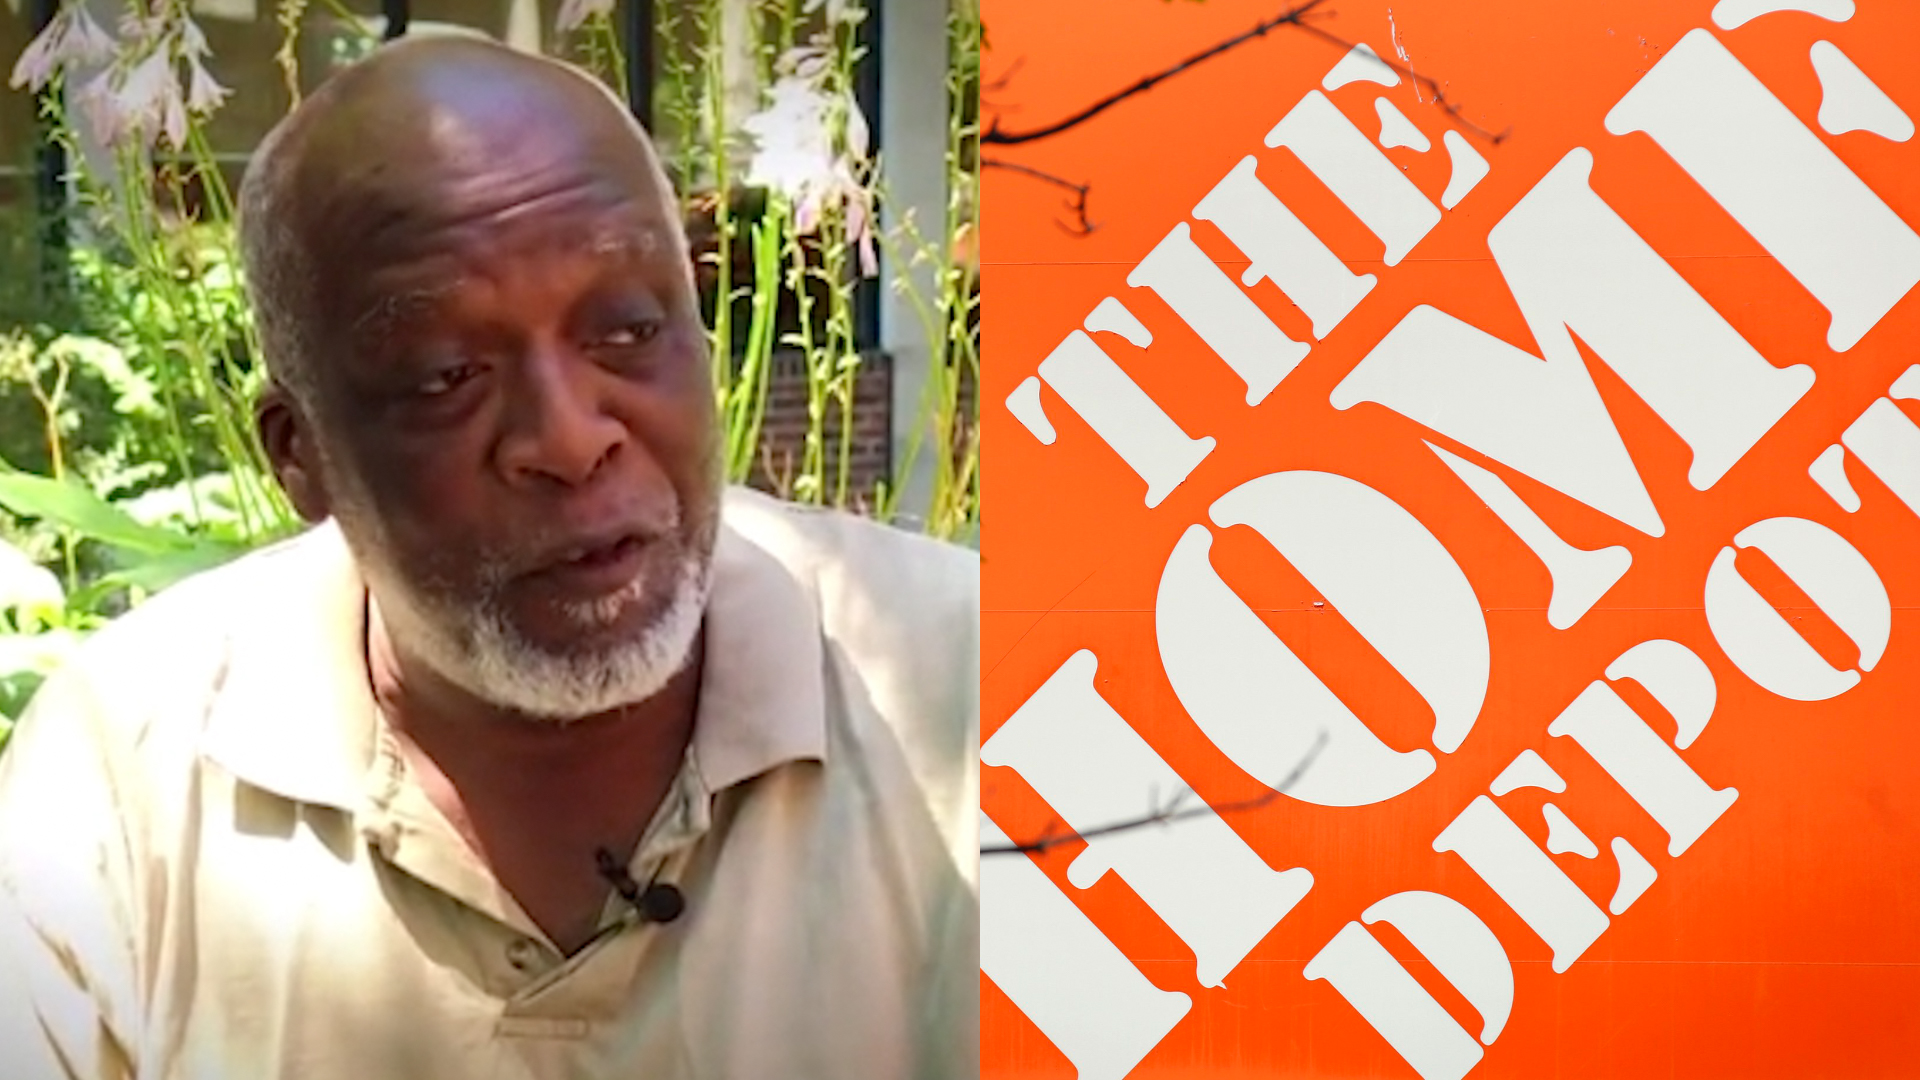 Home Depot fired him after he spoke to a 'racist' customer. Then he told the media about it.